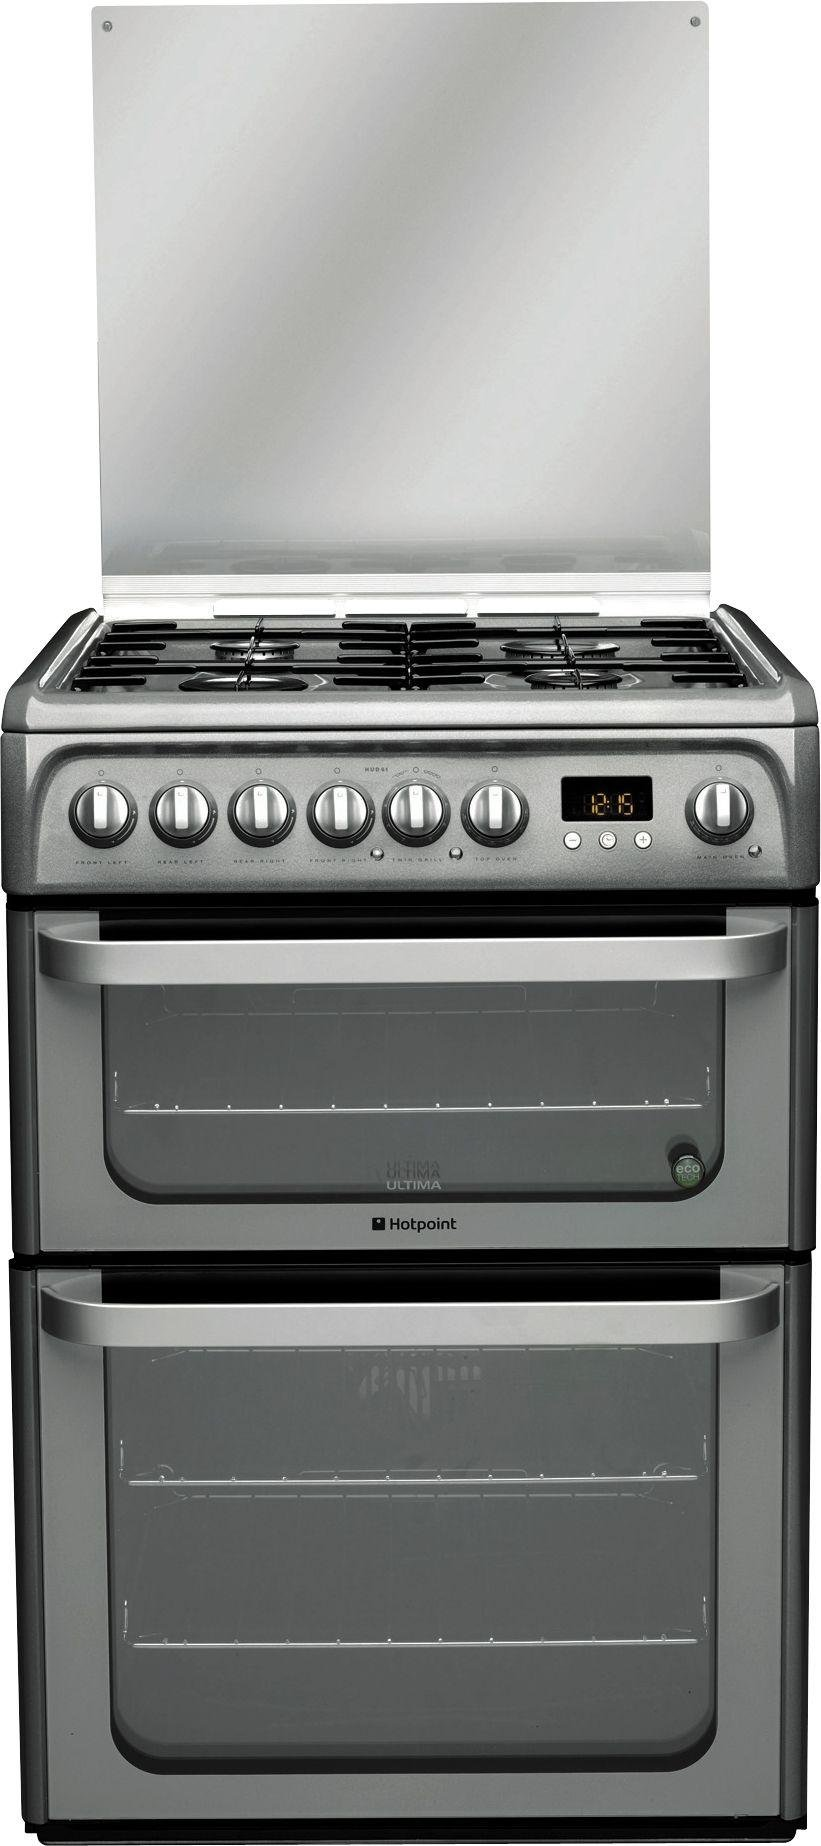 Hotpoint - HUD61G - Dual Fuel Cooker